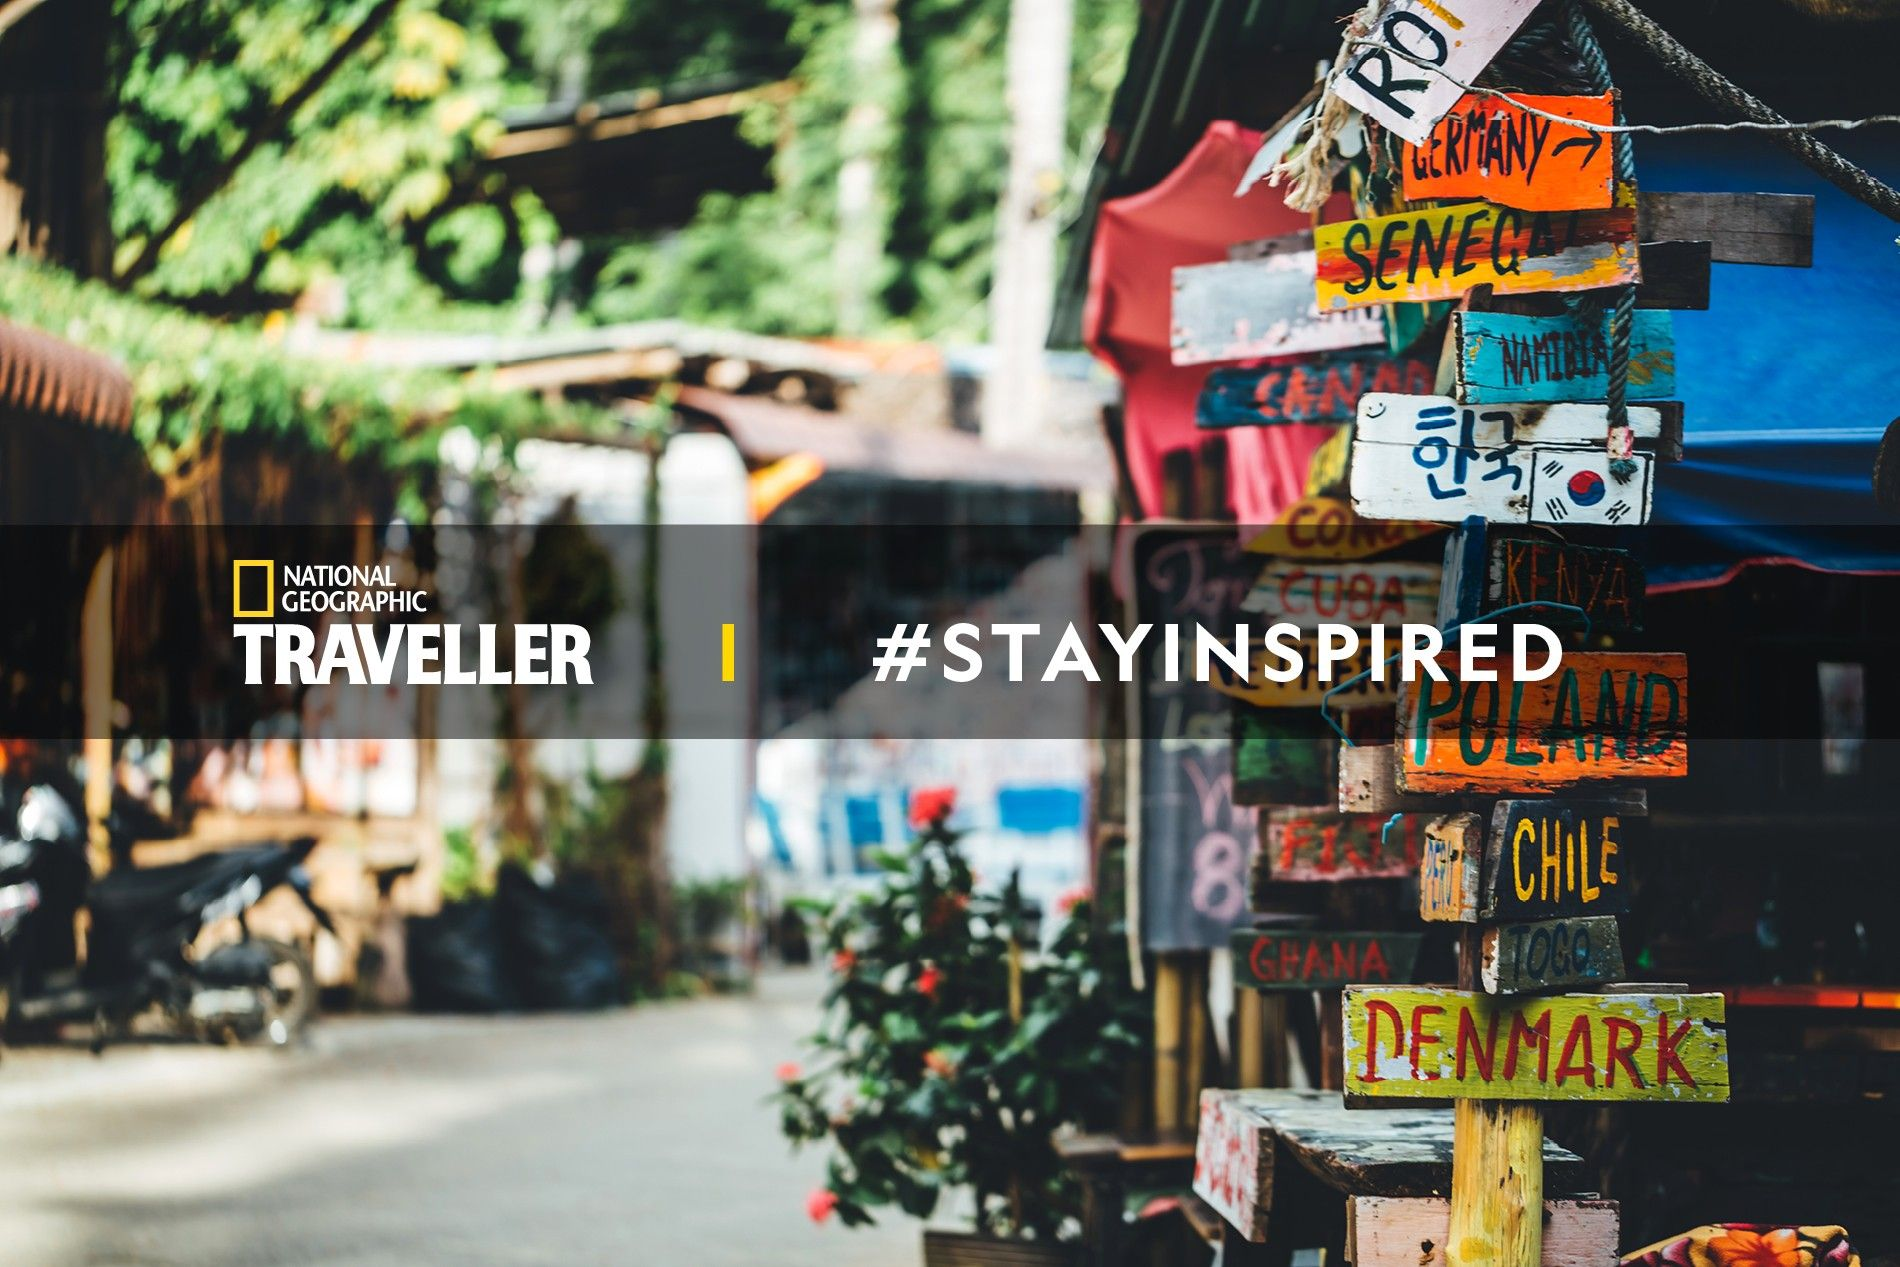 Keep exploring with National Geographic Traveller